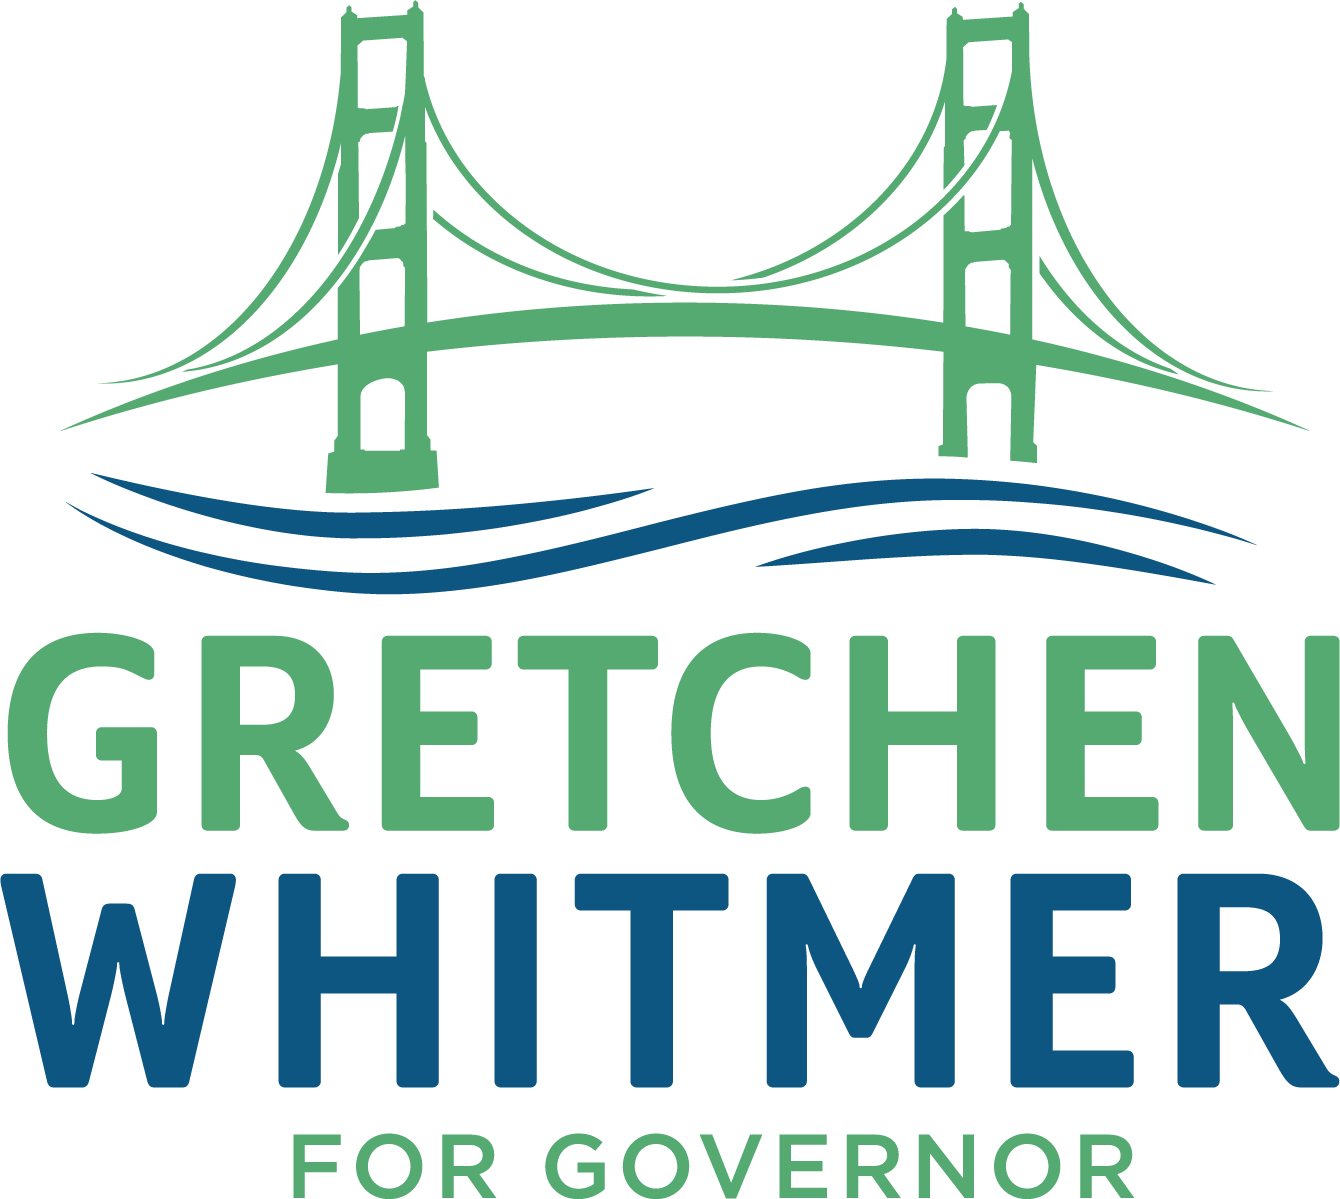 Gretchen Whitmer for Governor